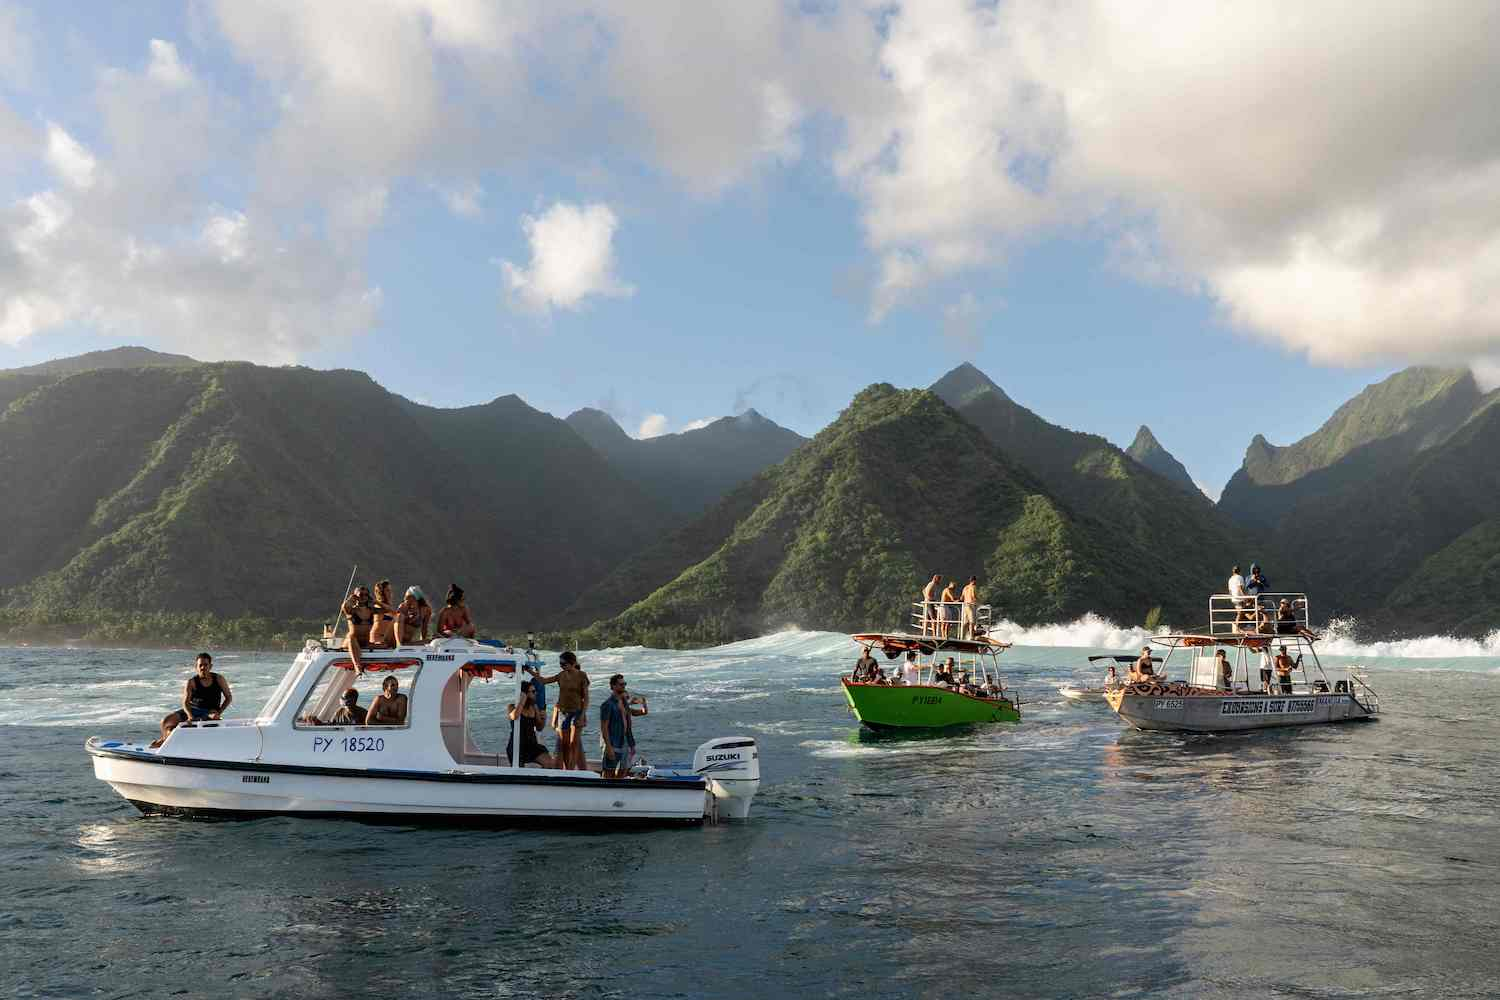 """Spectators gather on """"taxi boats"""" as they prepare to watch local surfers in action at Teahupoo off the coast of Tahiti in French Polynesia on May 11. Teahupoo has been chosen to host the surfing events of the Paris 2024 Olympic Games. (AFP Photo)"""